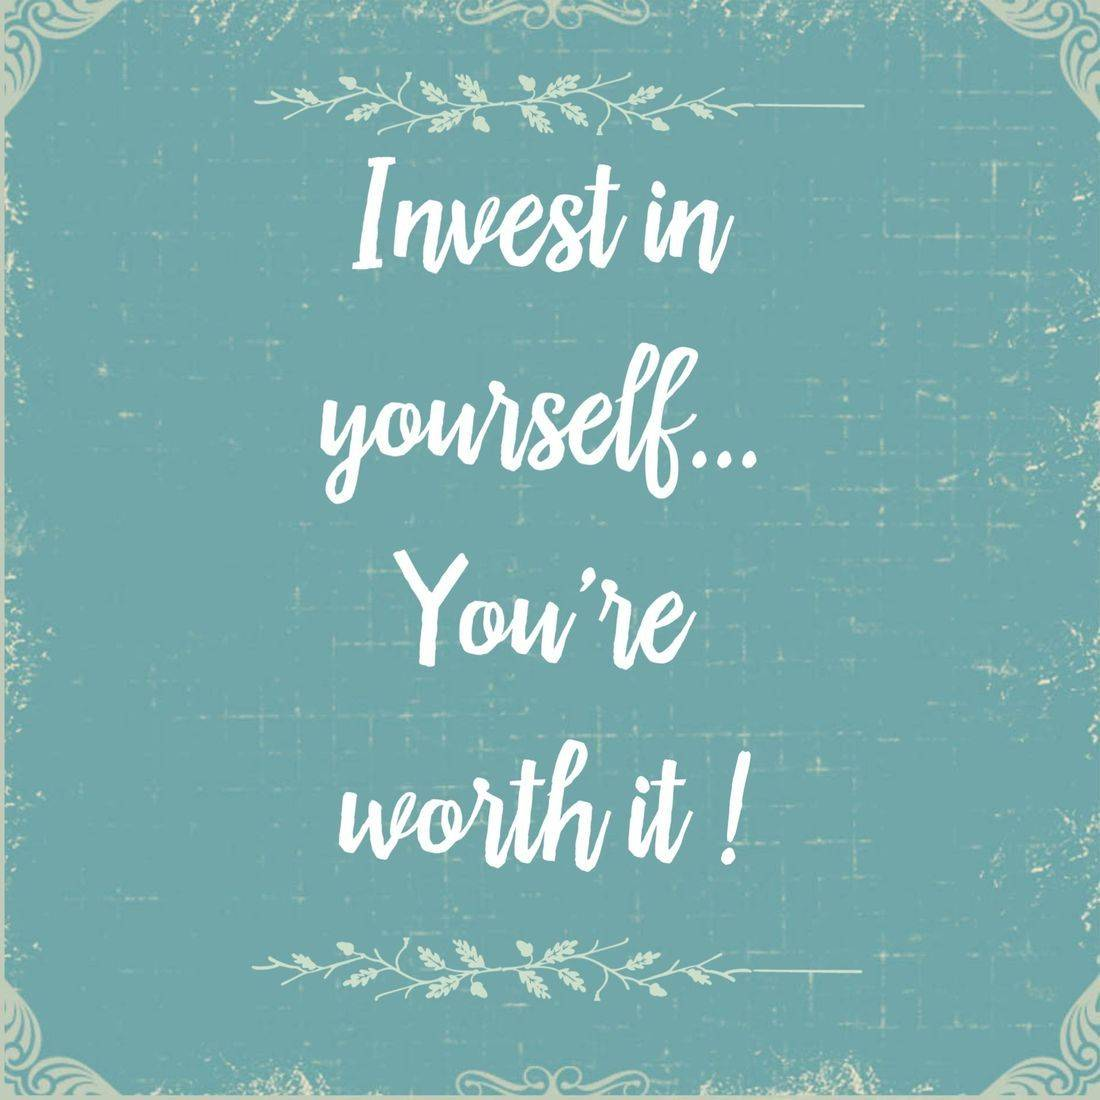 Invest in yourself, you're worth it